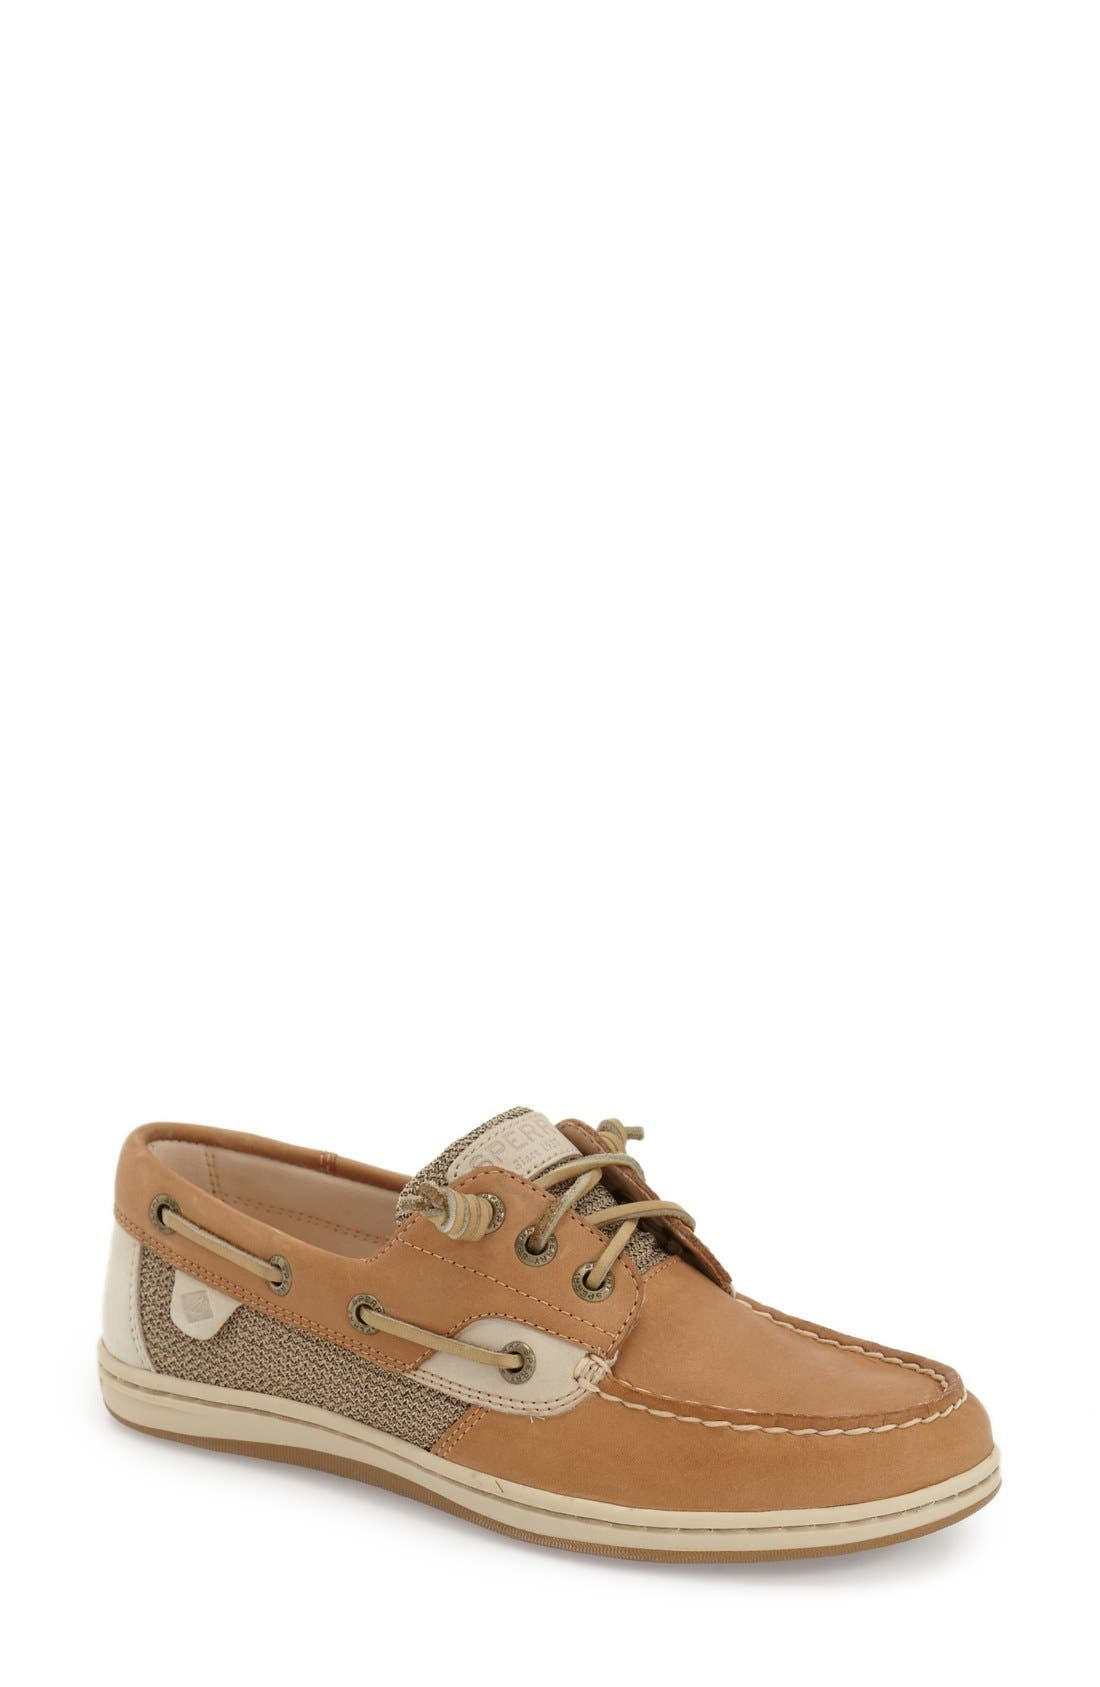 Main Image - Sperry 'Songfish' Boat Shoe (Women)